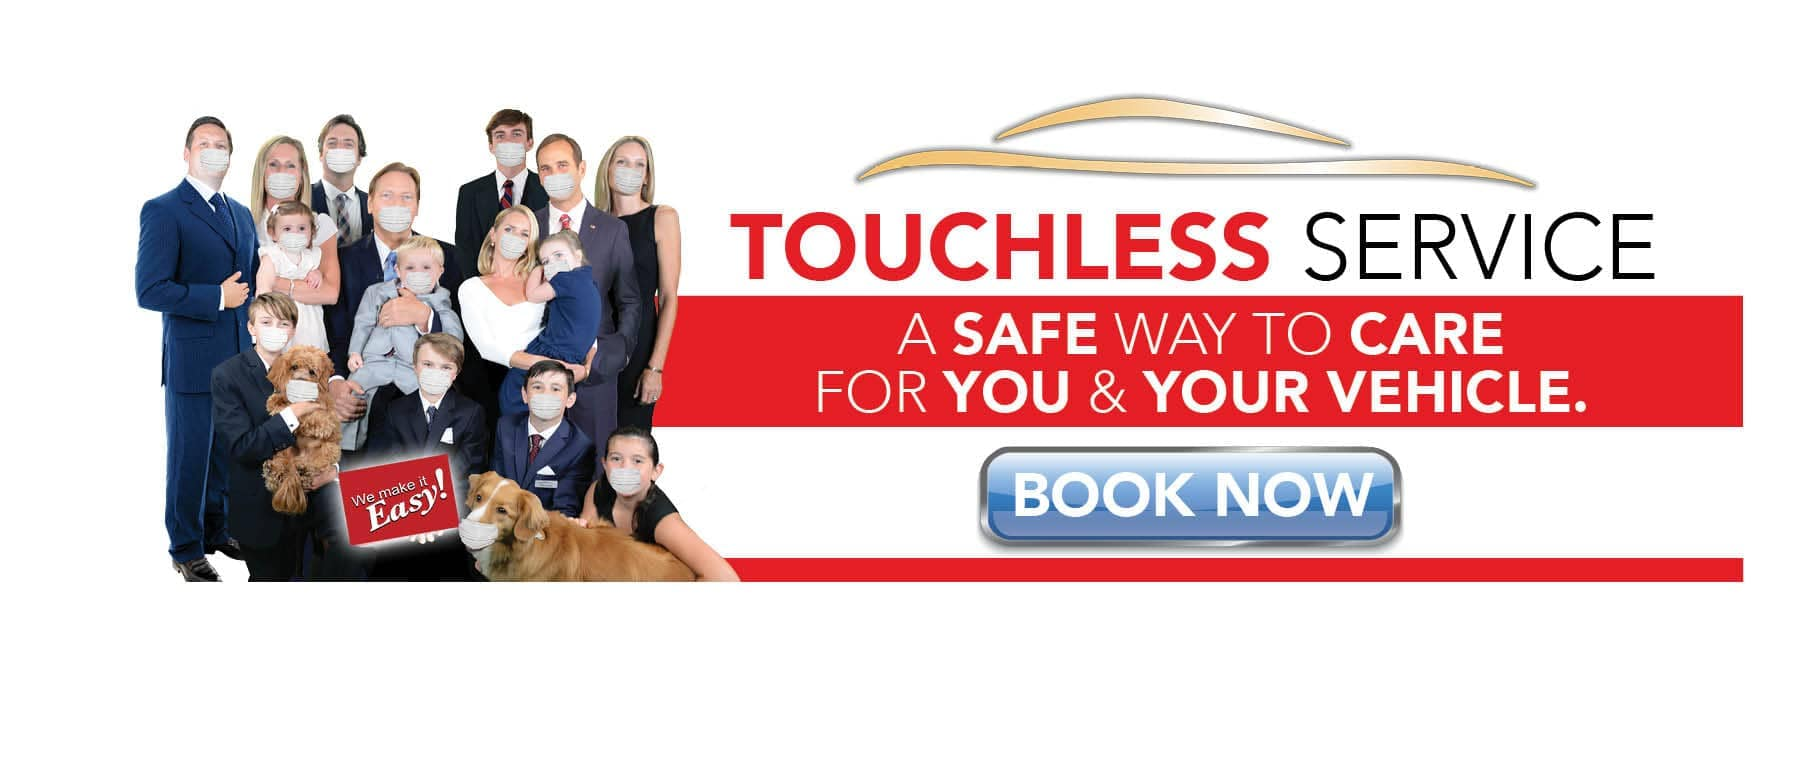 Touchless Service banner